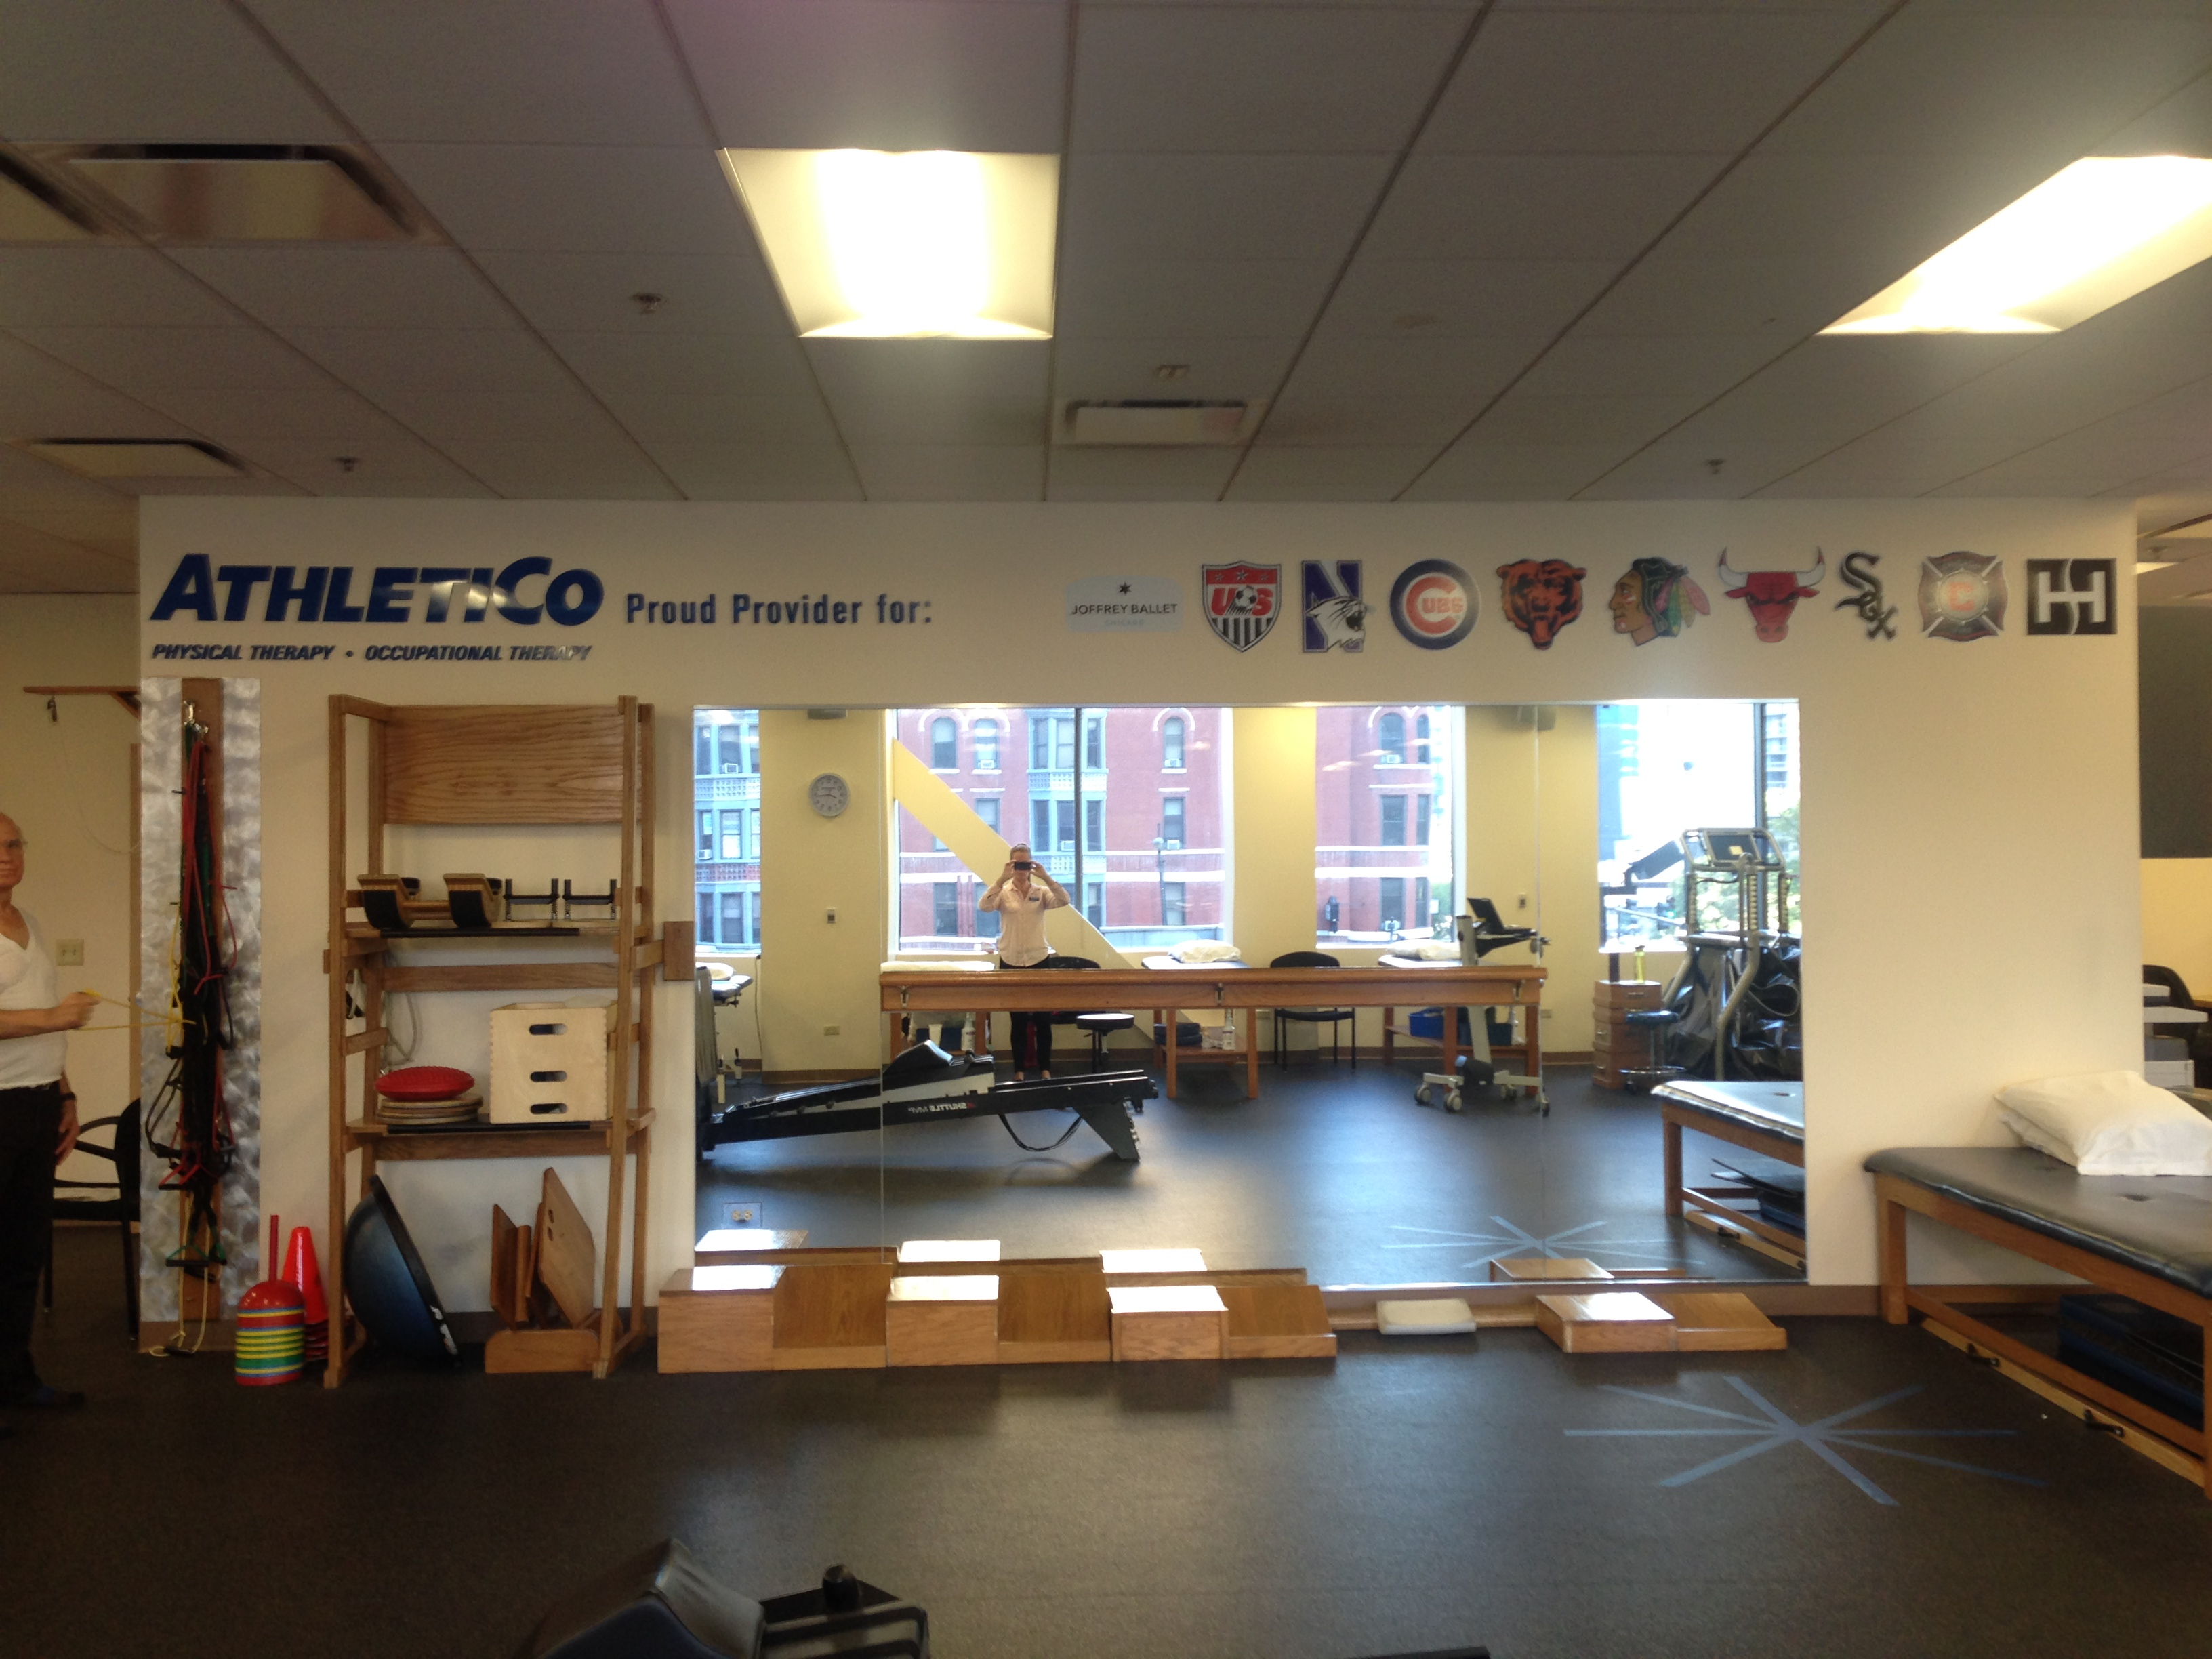 Glenview california physical therapy - Affiliate Logo Wall